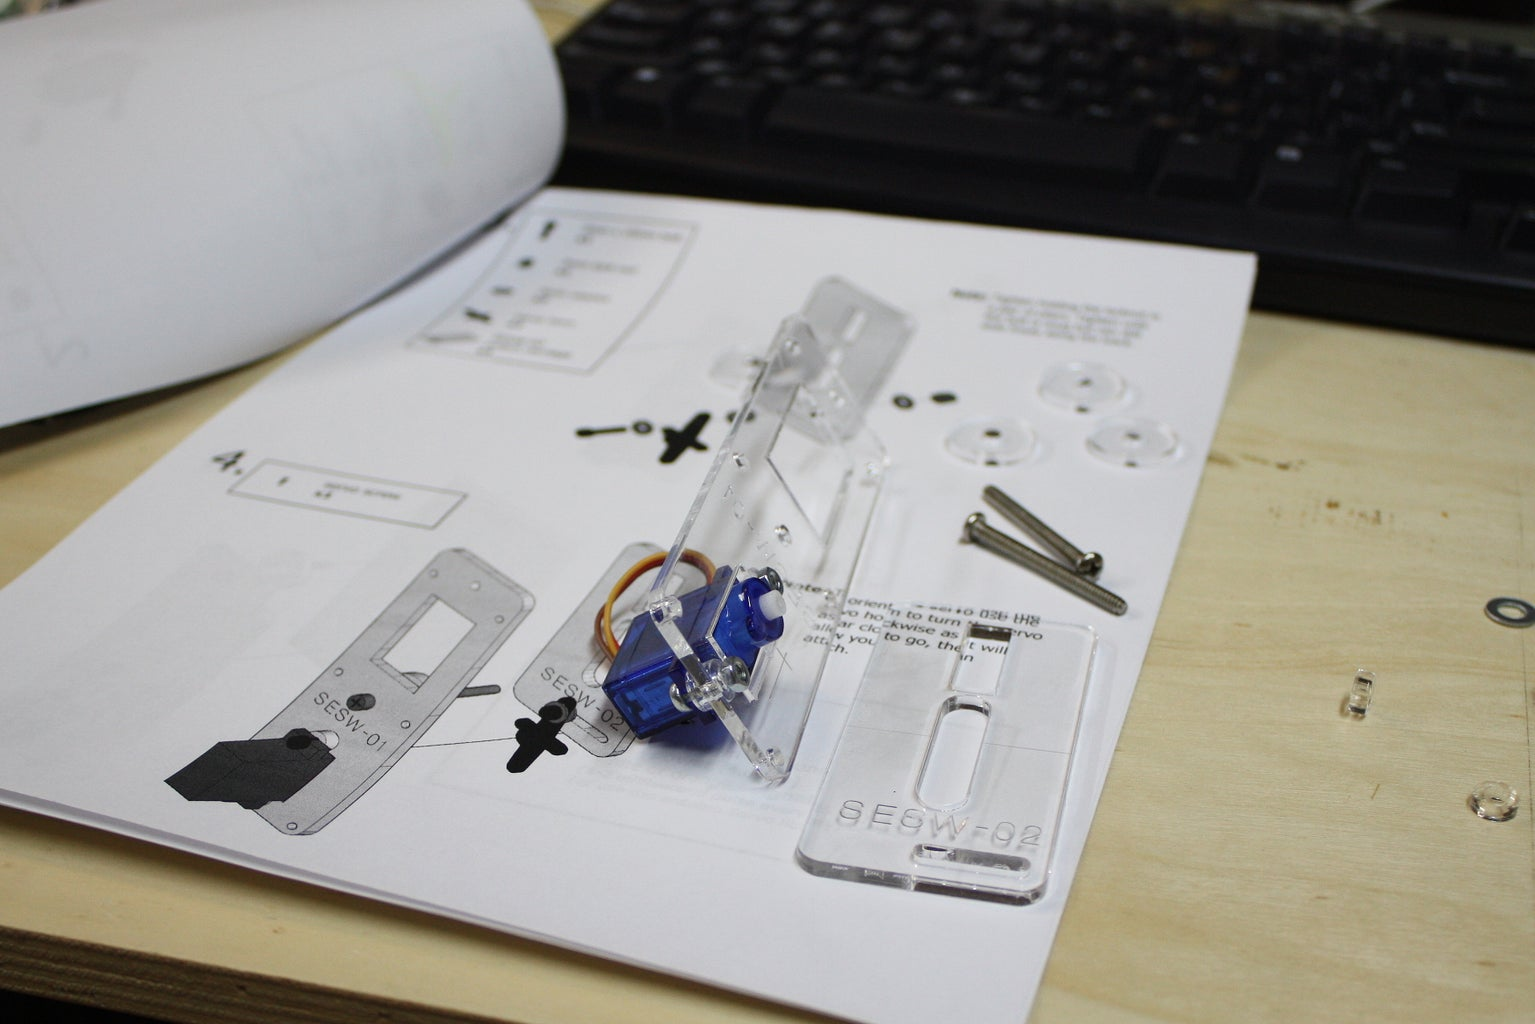 Assembly & Wiring